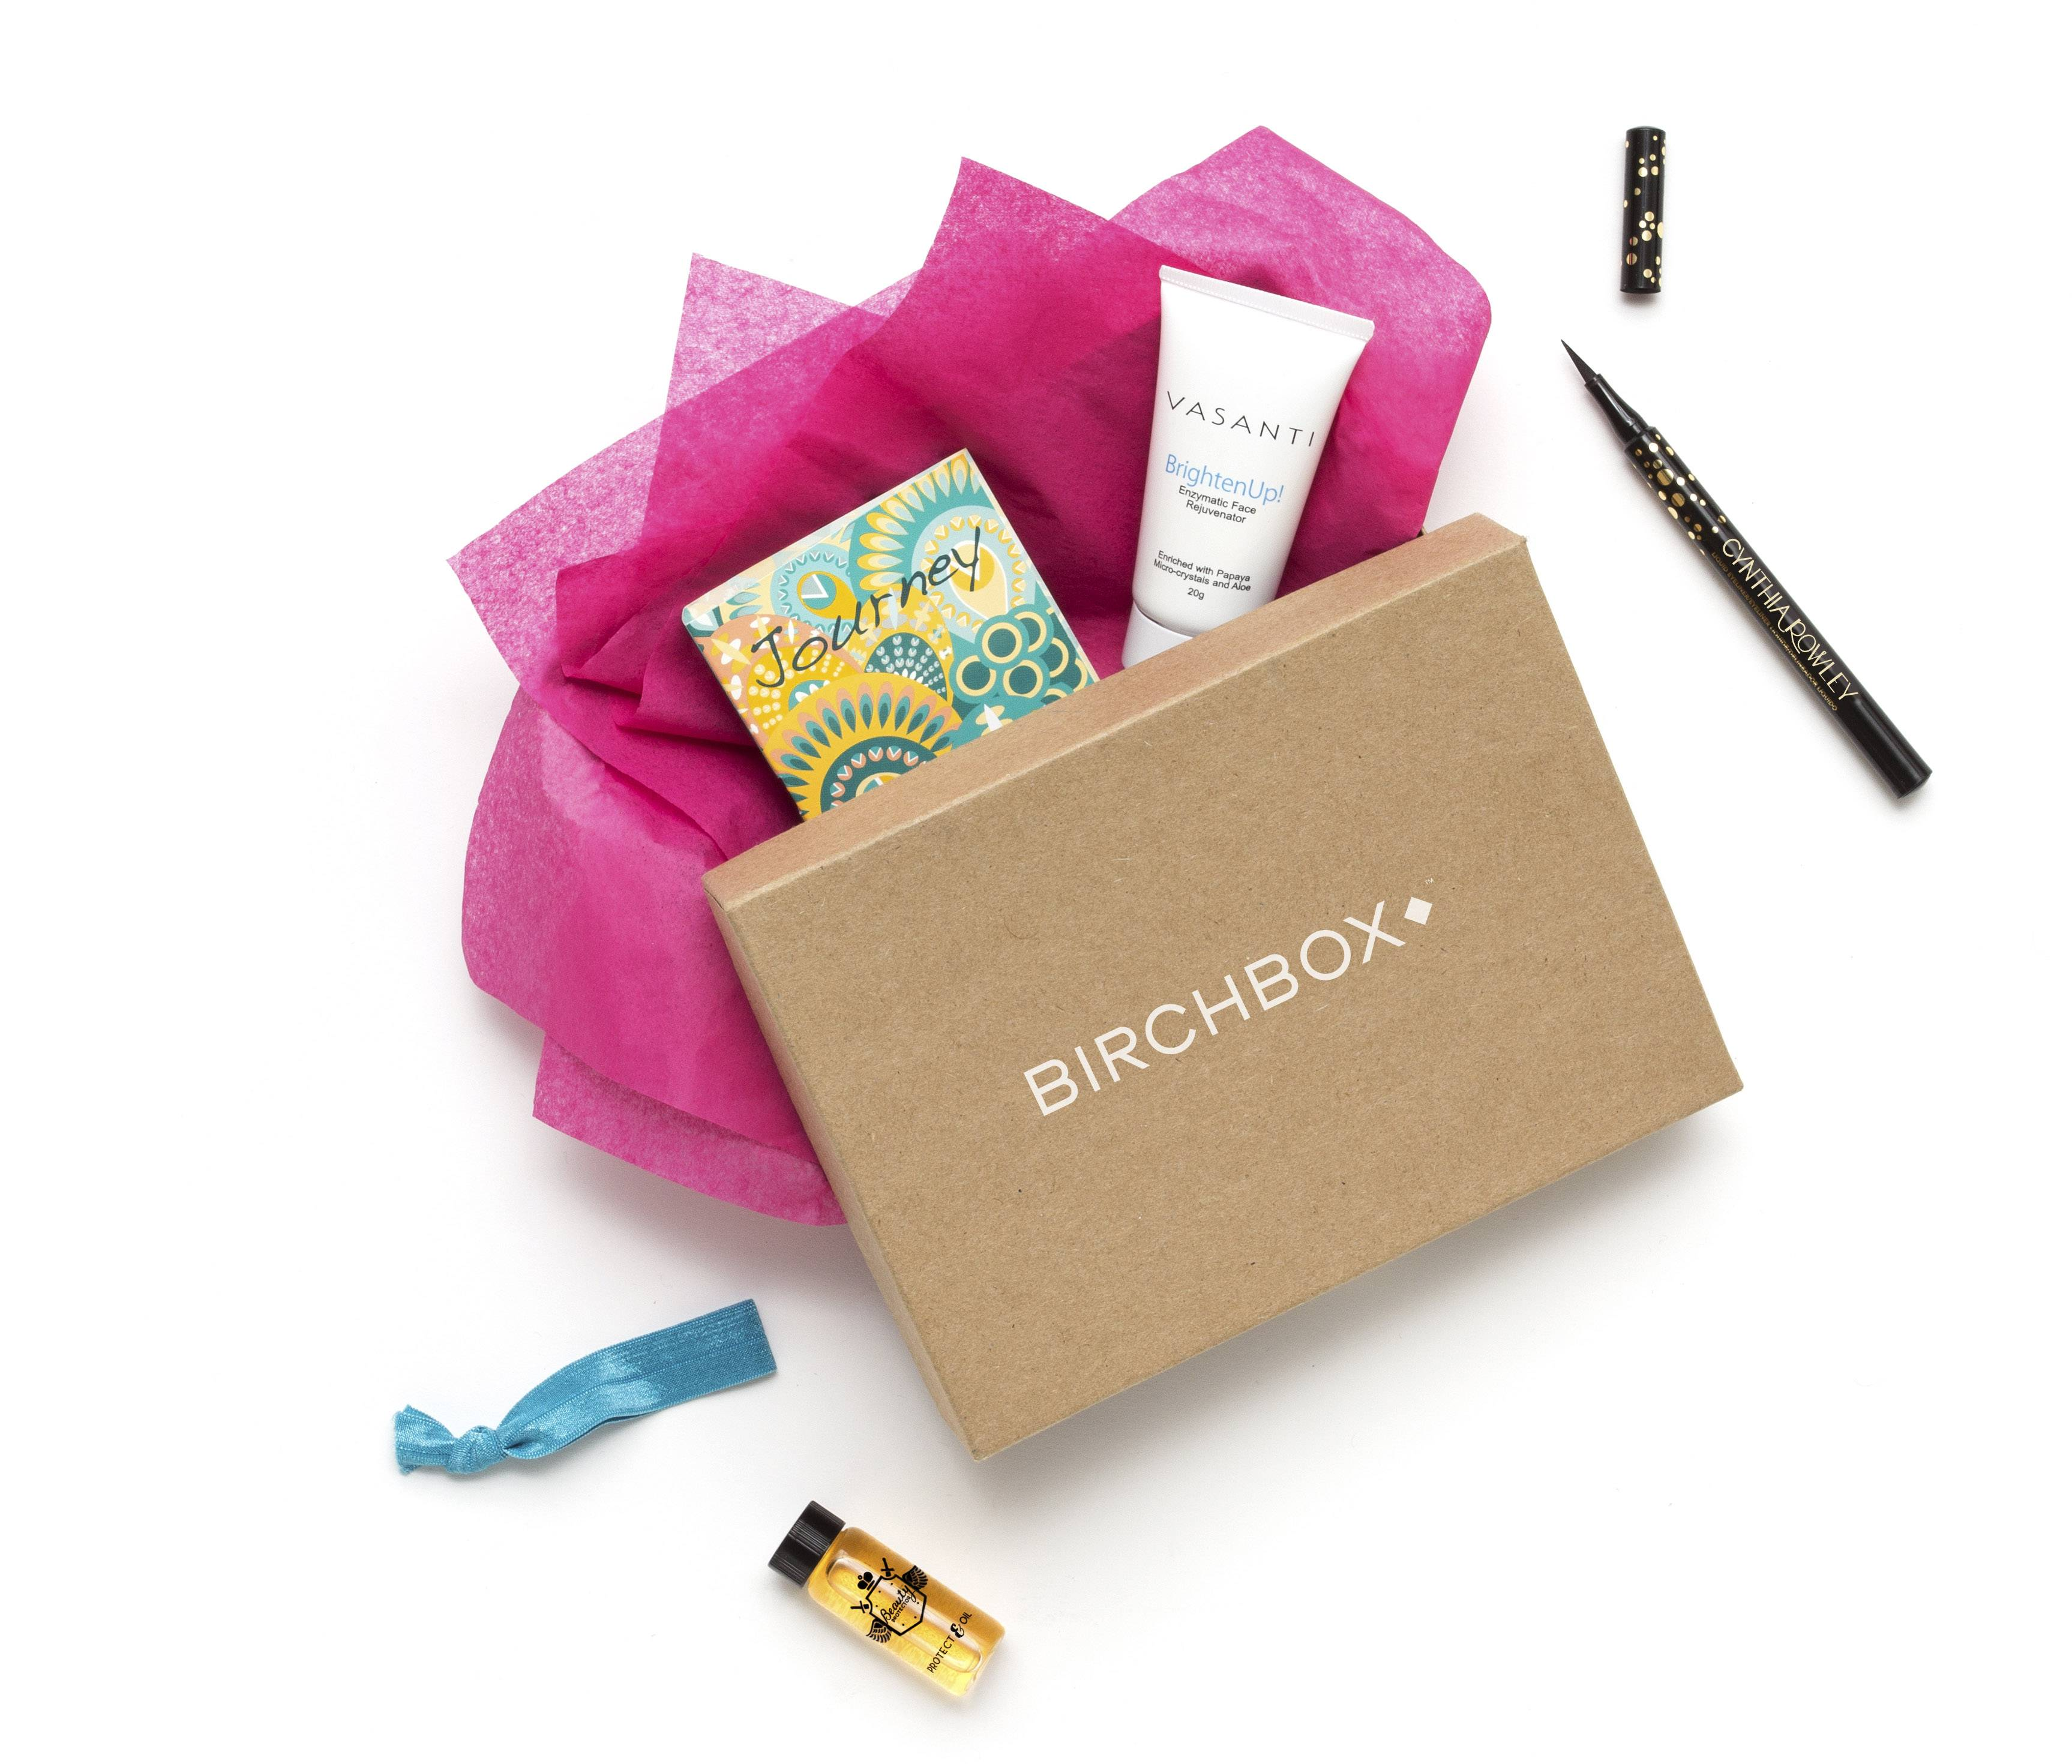 Consumers can subscribe to companies like Birch Box to receive monthly shipments of beauty product samples.